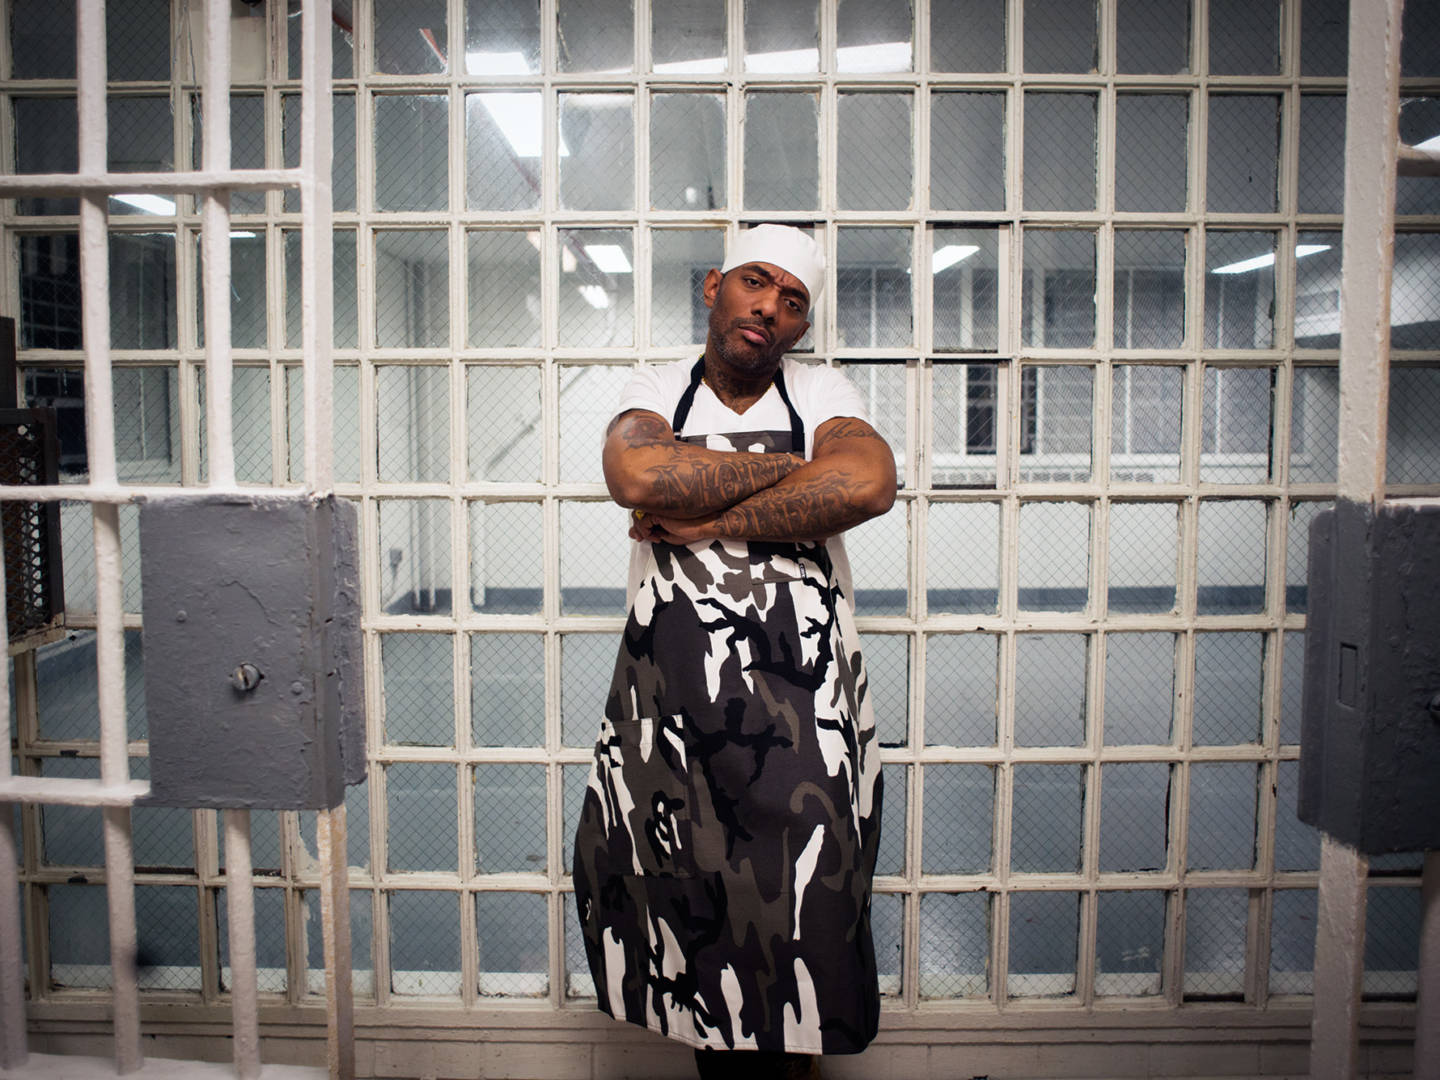 From Mobb Deep Rapper, A Cookbook For Healthy Eating — In Prison